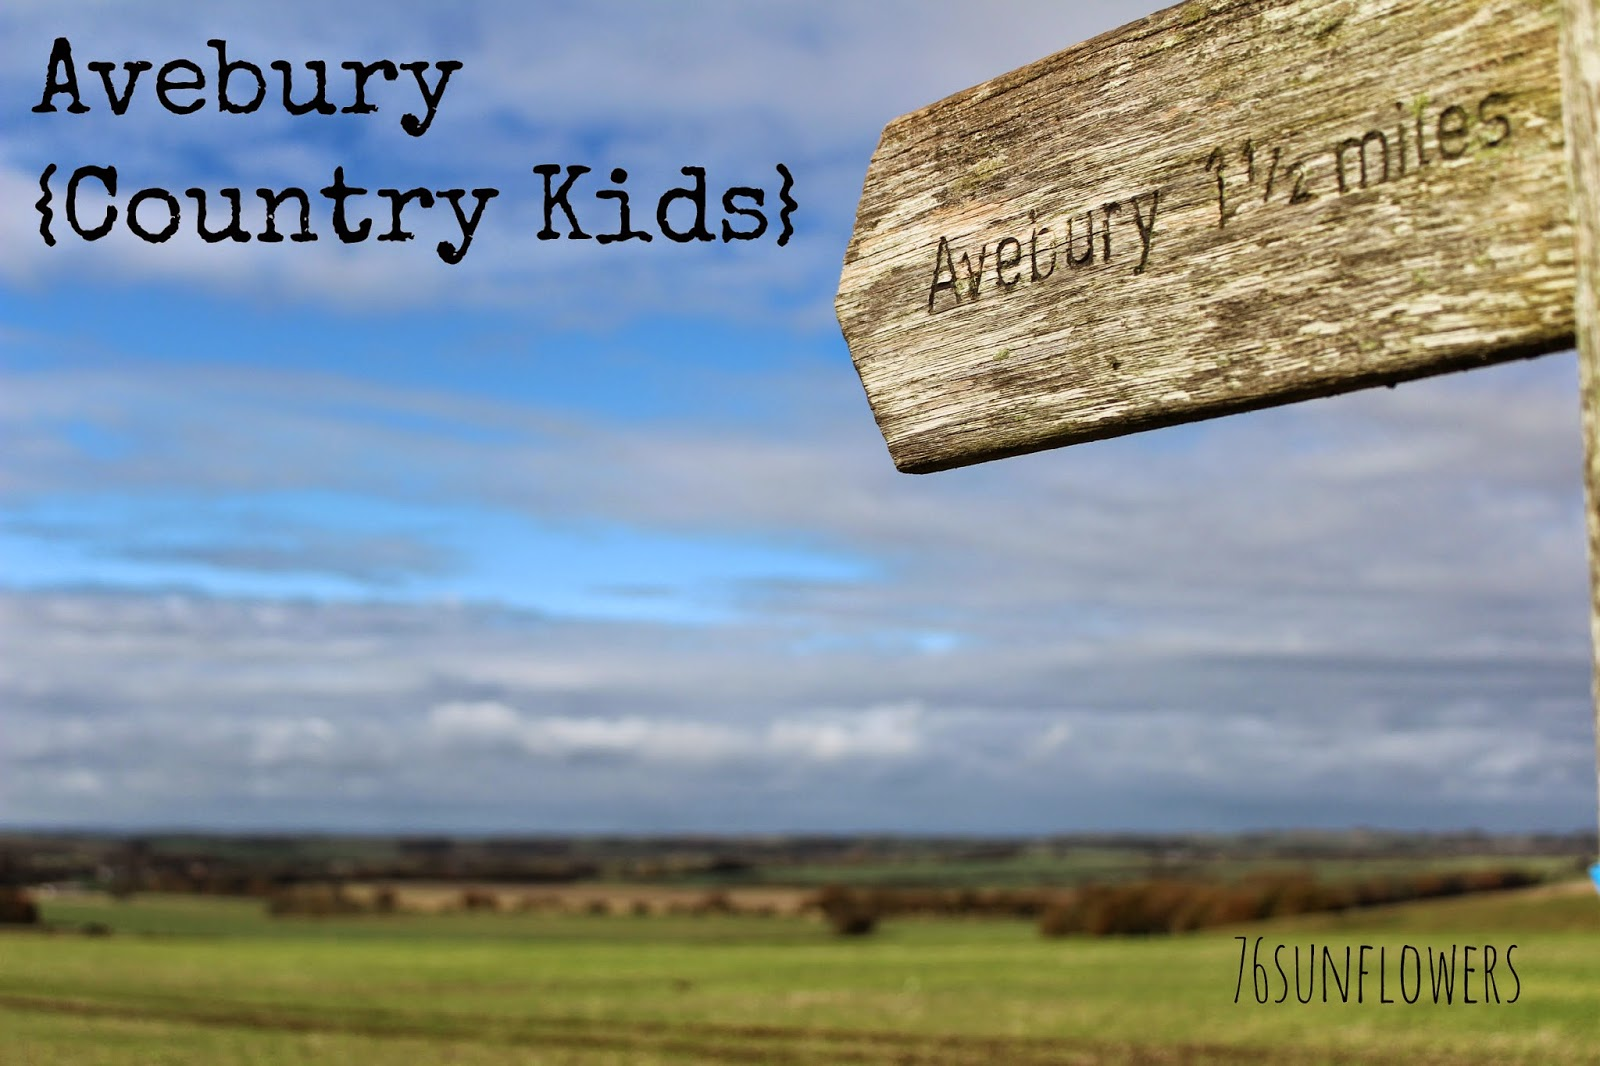 Avebury {Country Kids} // 76sunflowers